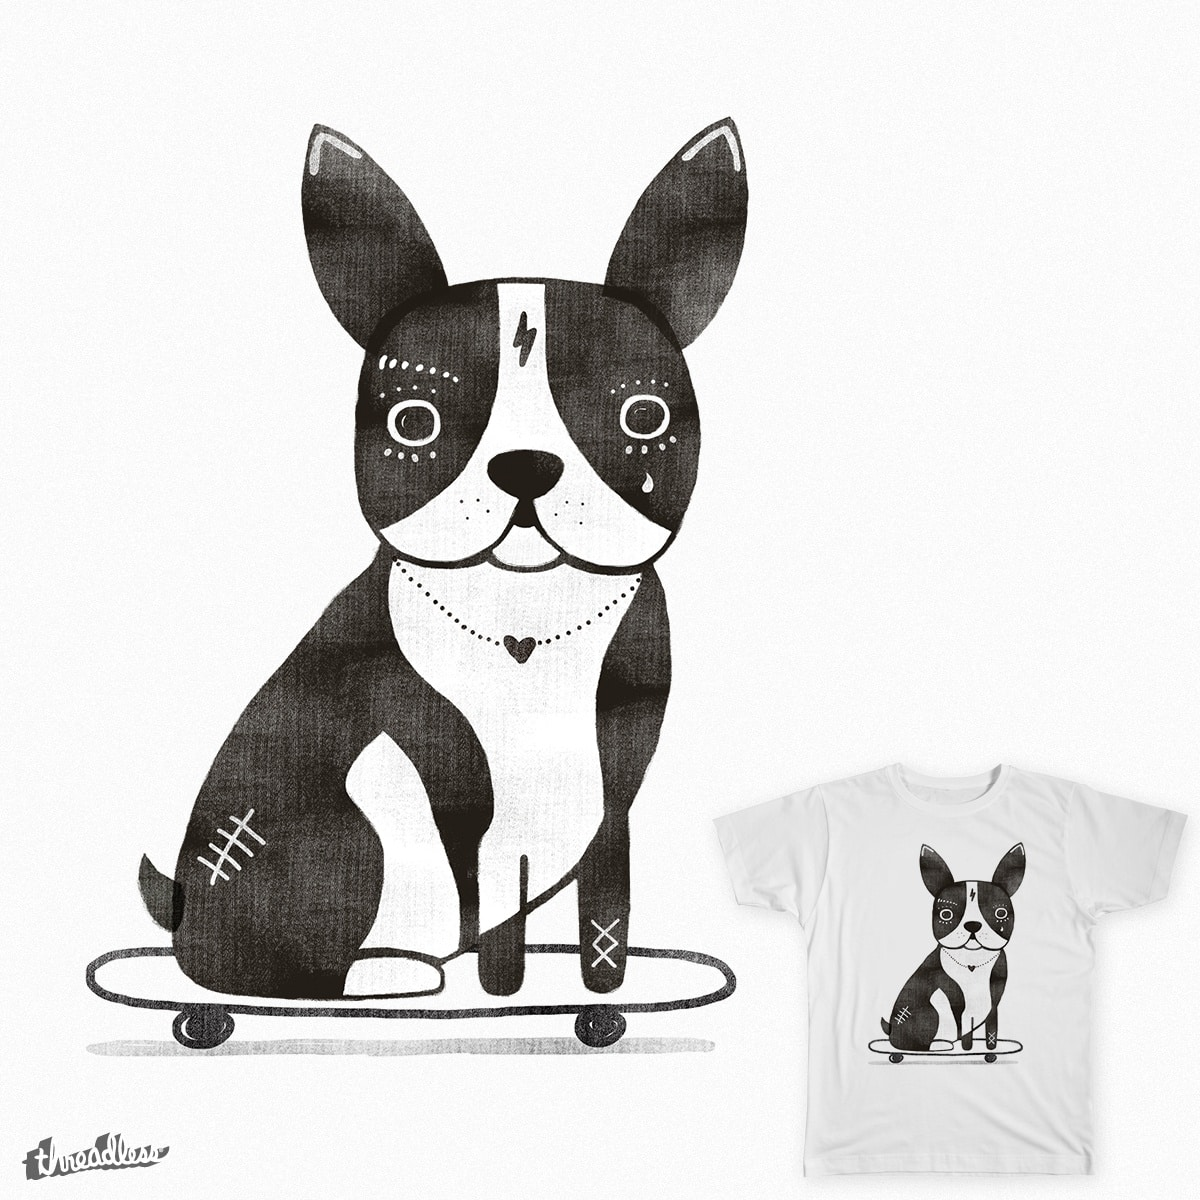 Boston Skater by Farnell on Threadless